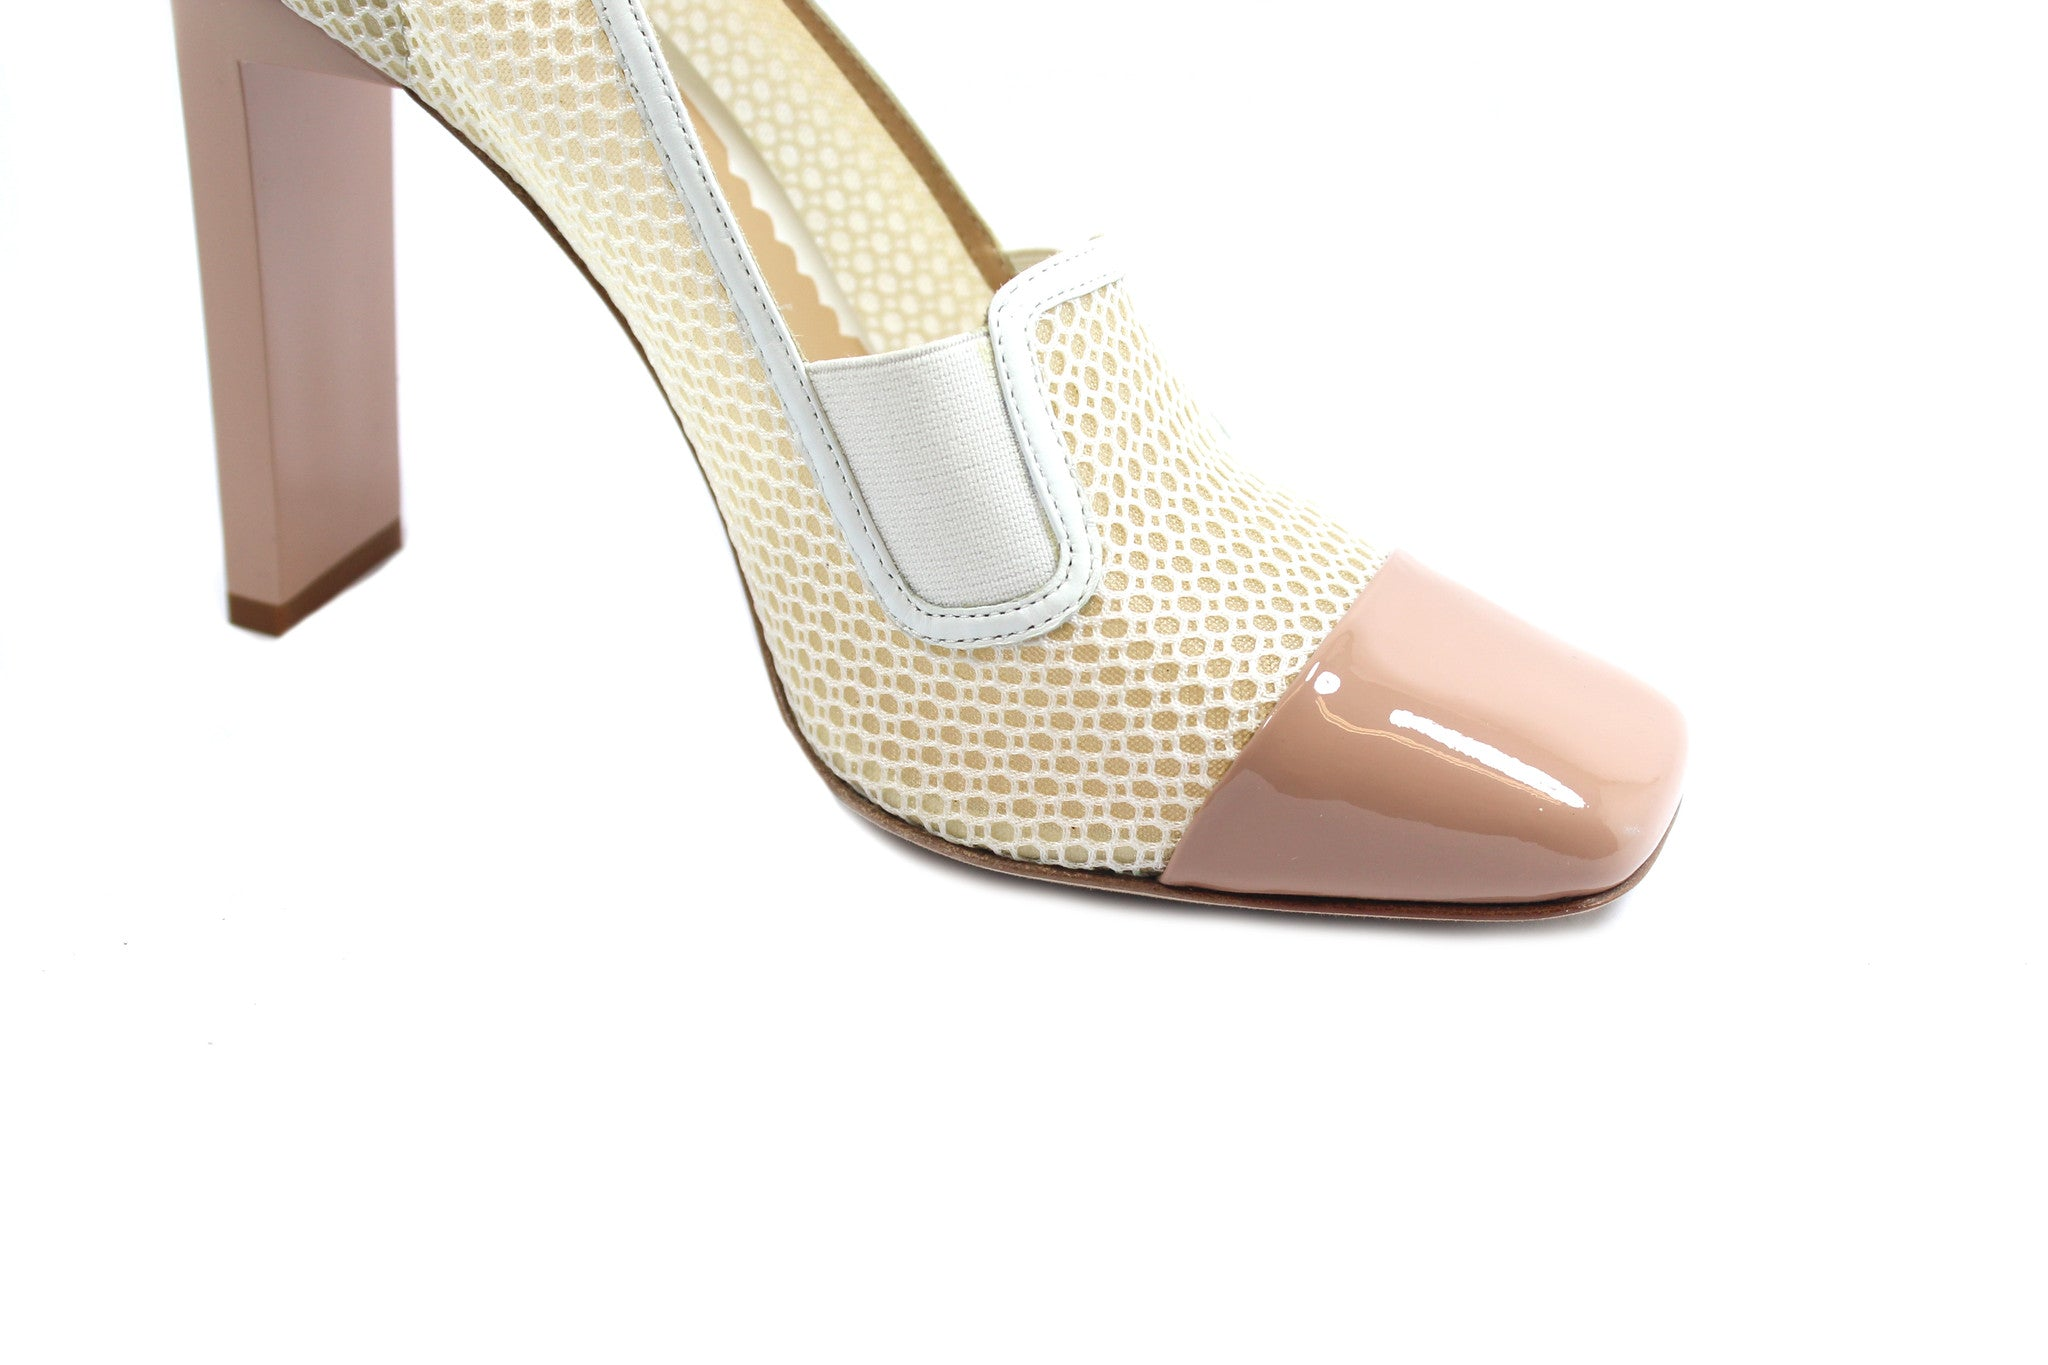 Reed Krakoff Mesh Atlas Nude and White Pumps (Size 38.5) - Encore Consignment - 8